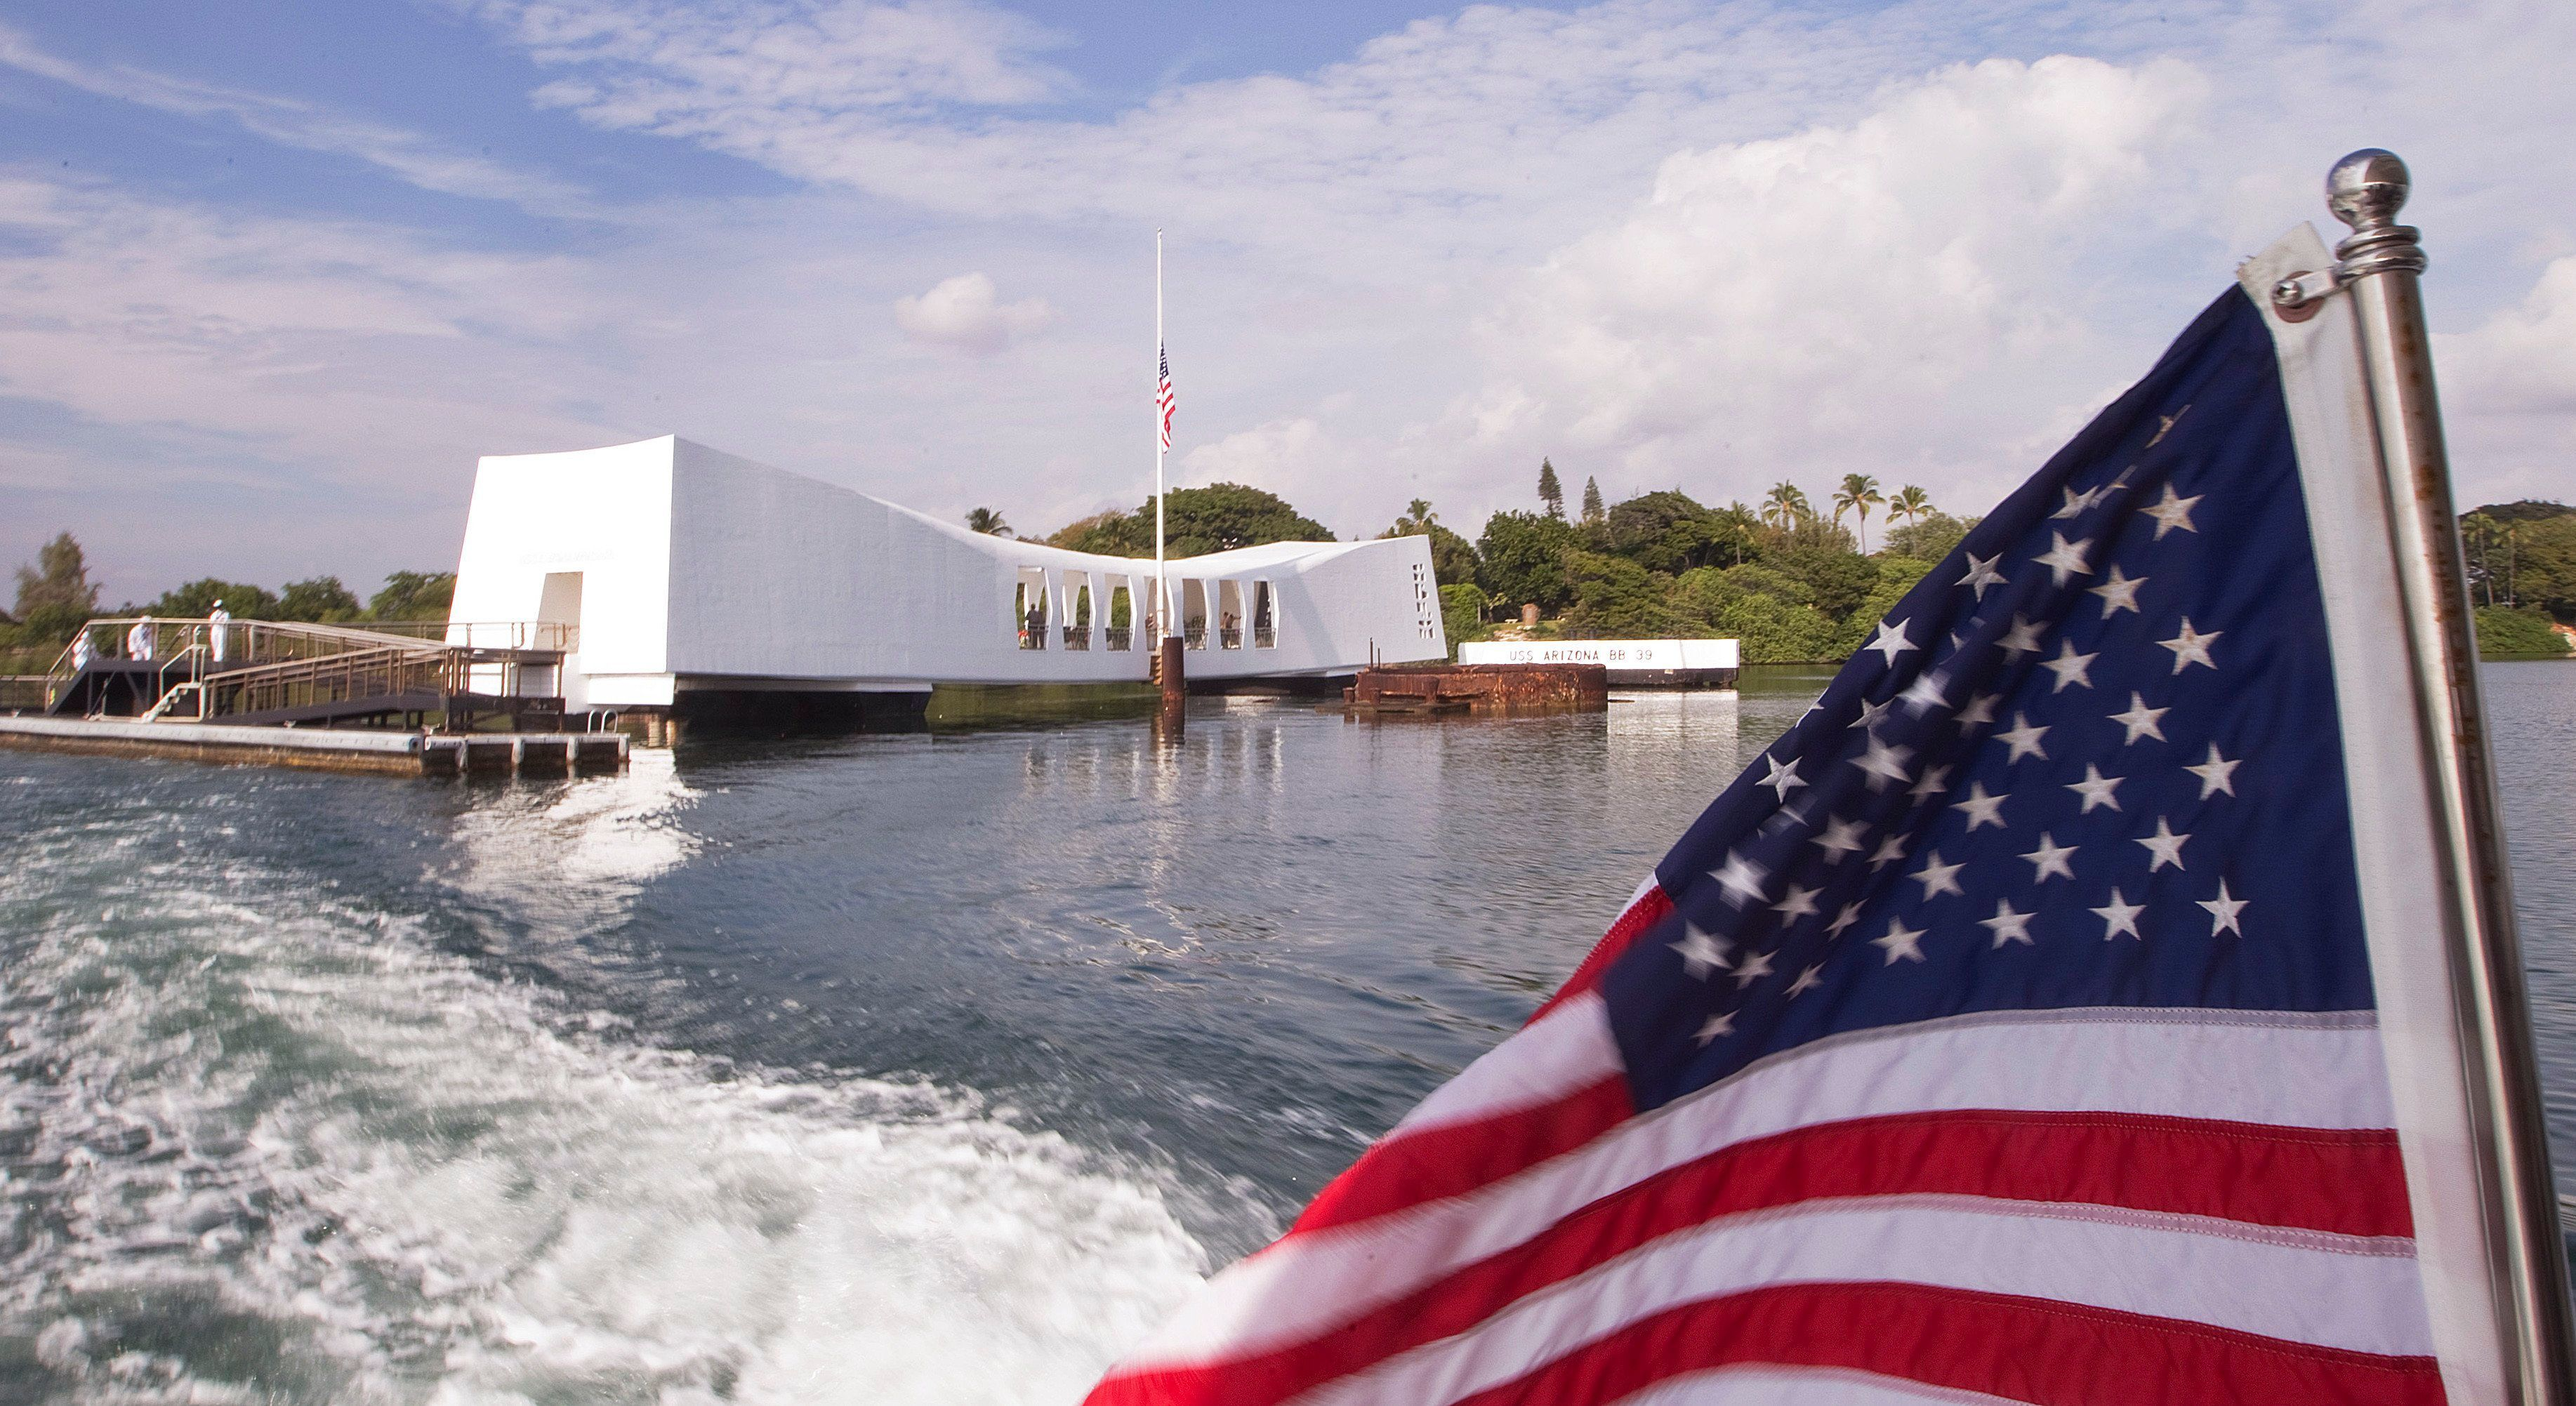 This Dec. 7, 2012 file photo shows the the USS Arizona Memorial at Pearl Harbor, Hawaii. The National Park Service on Friday, Aug. 7, 2015 said it was naming the superintendent of national parks in the Seattle area to oversee the USS Arizona Memorial, which has been rocked by the alleged ticket sales even though people aren't ever supposed to pay to visit the solemn site honoring World War II dead. (AP Photo/Eugene Tanner, File)